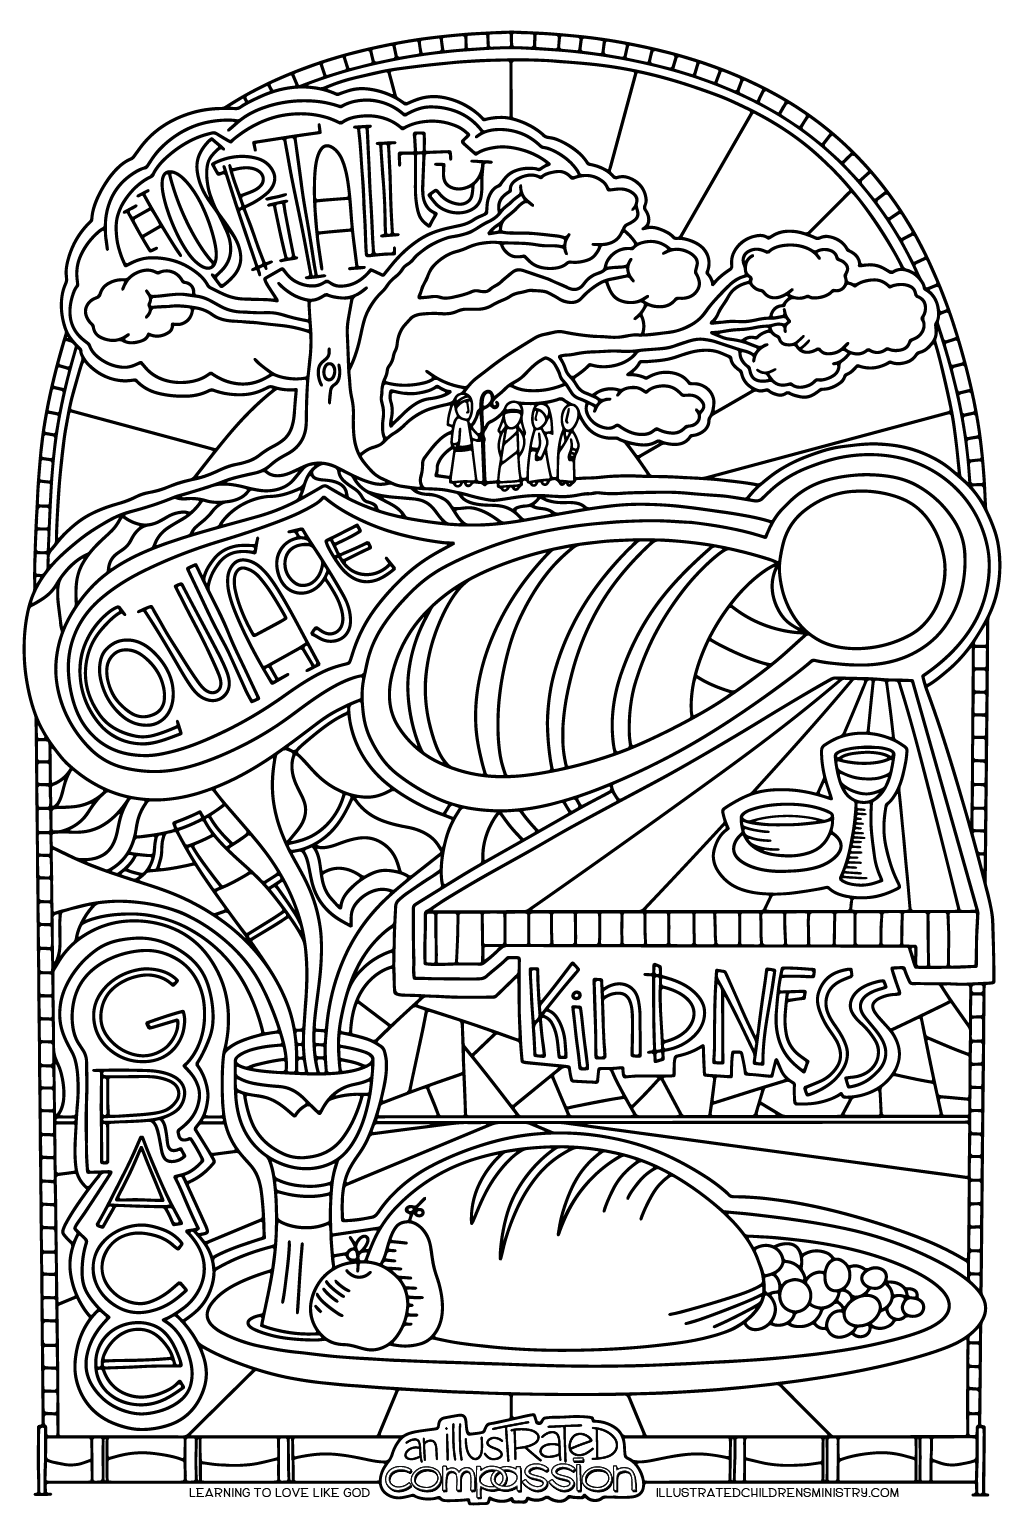 Hospitality, Courage, Kindness coloring poster B&W